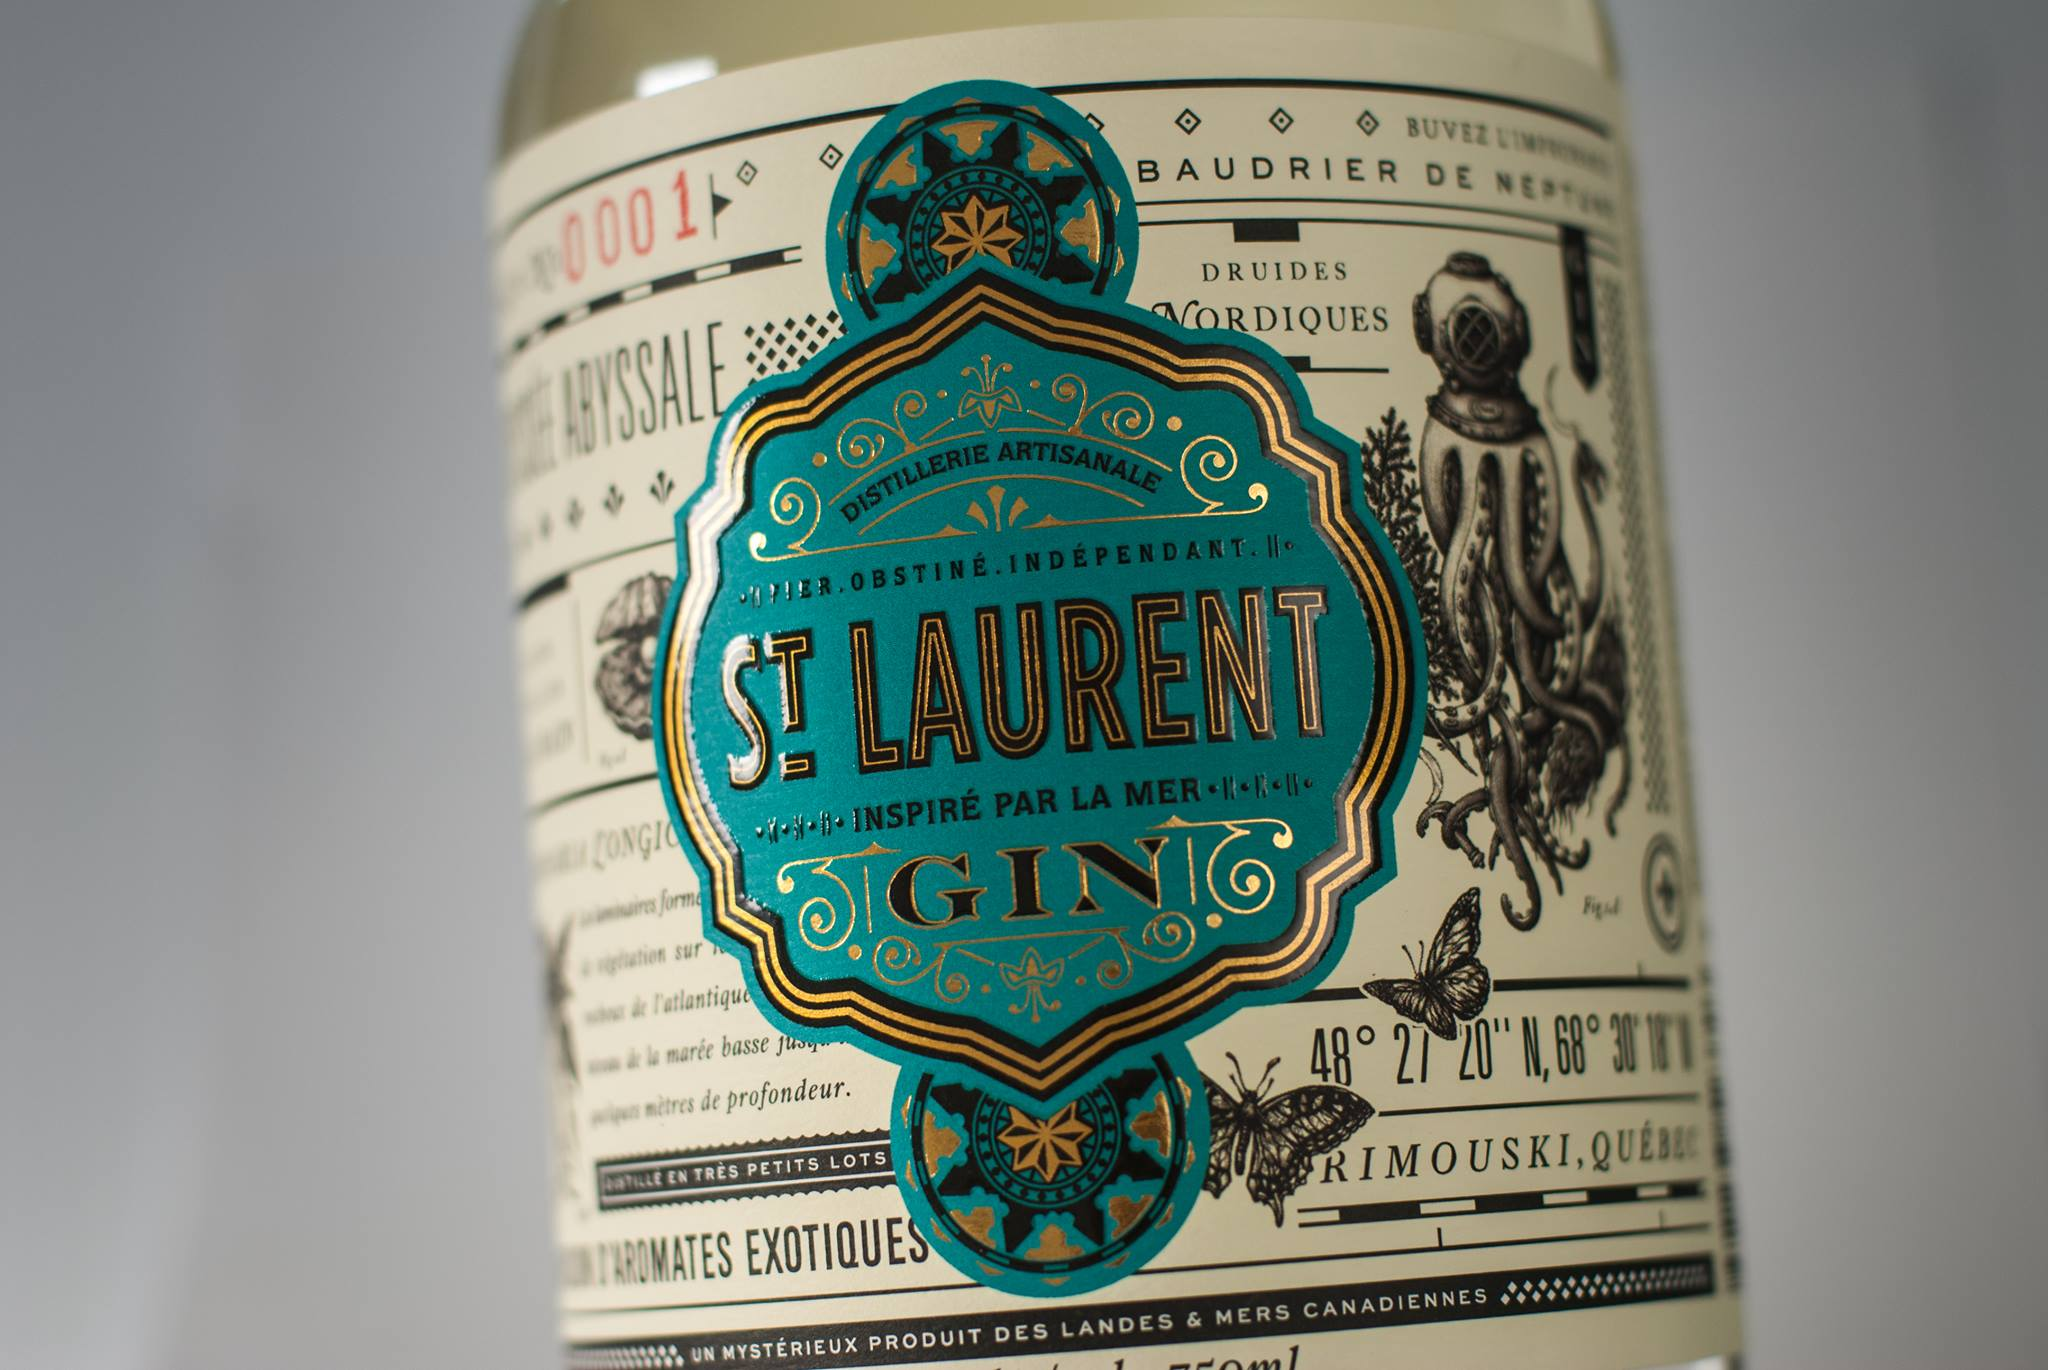 Bottle of gin from St-Laurent's Gin